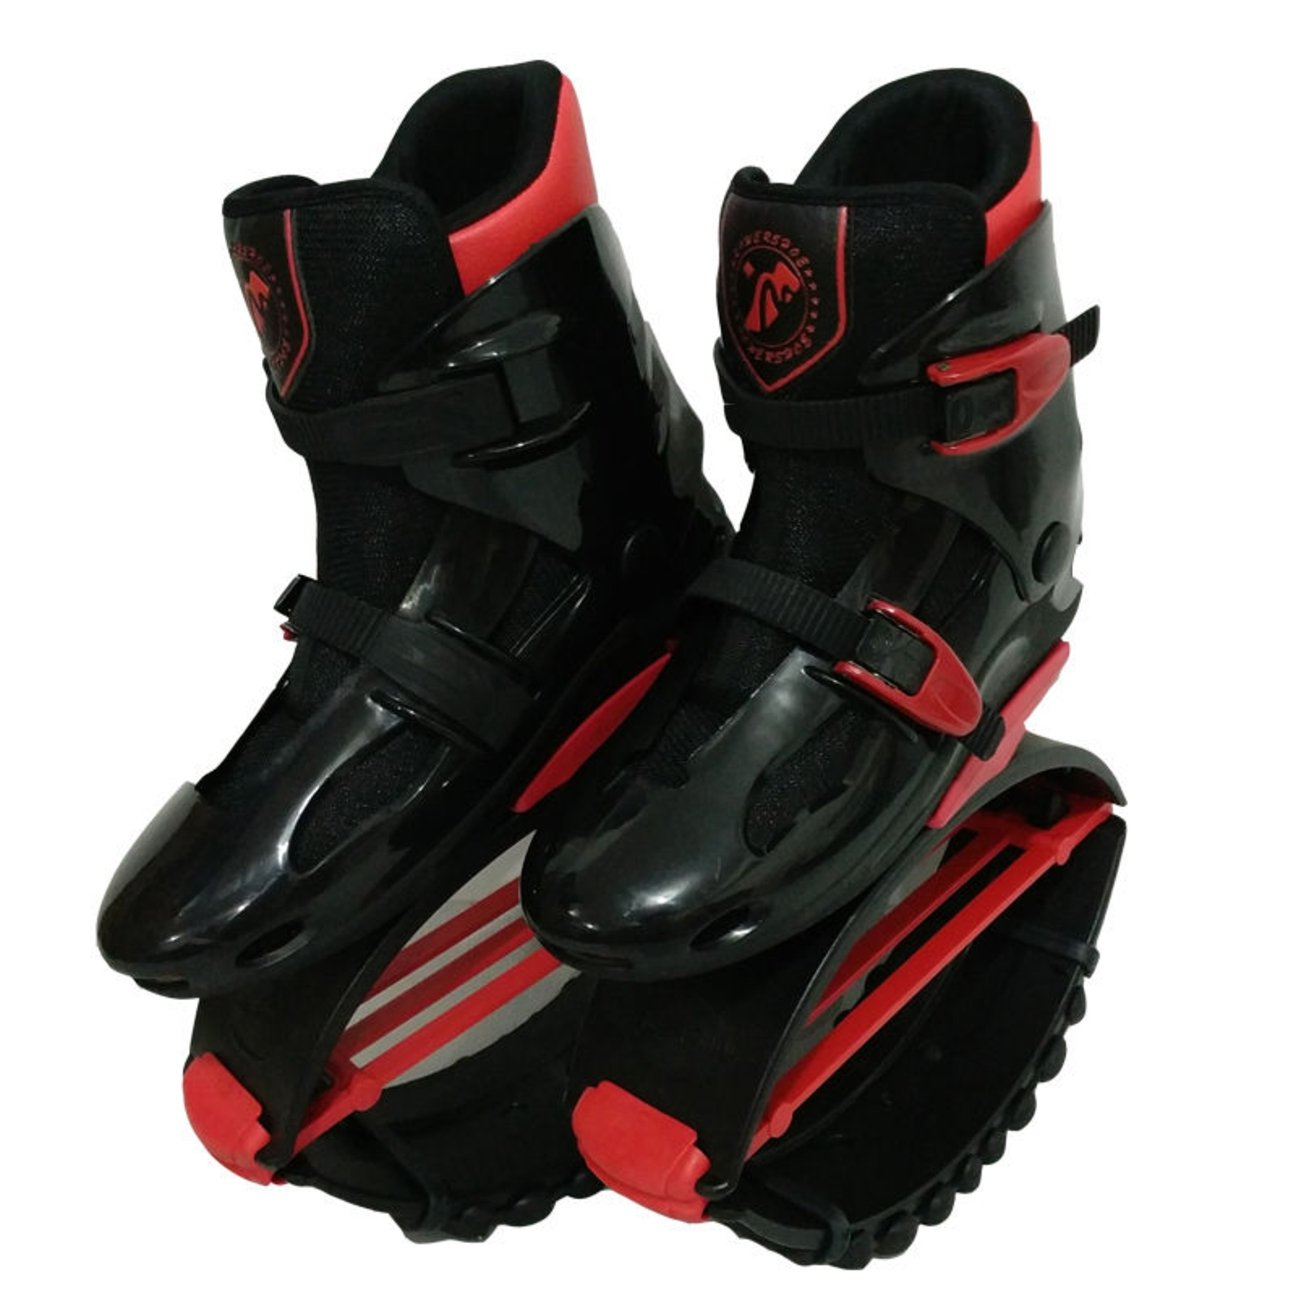 Unisex Kids Adults Anti-Gravity Running Boots Fitness Bounce Shoe Jumping Shoes 60-240 LBS Black/Red